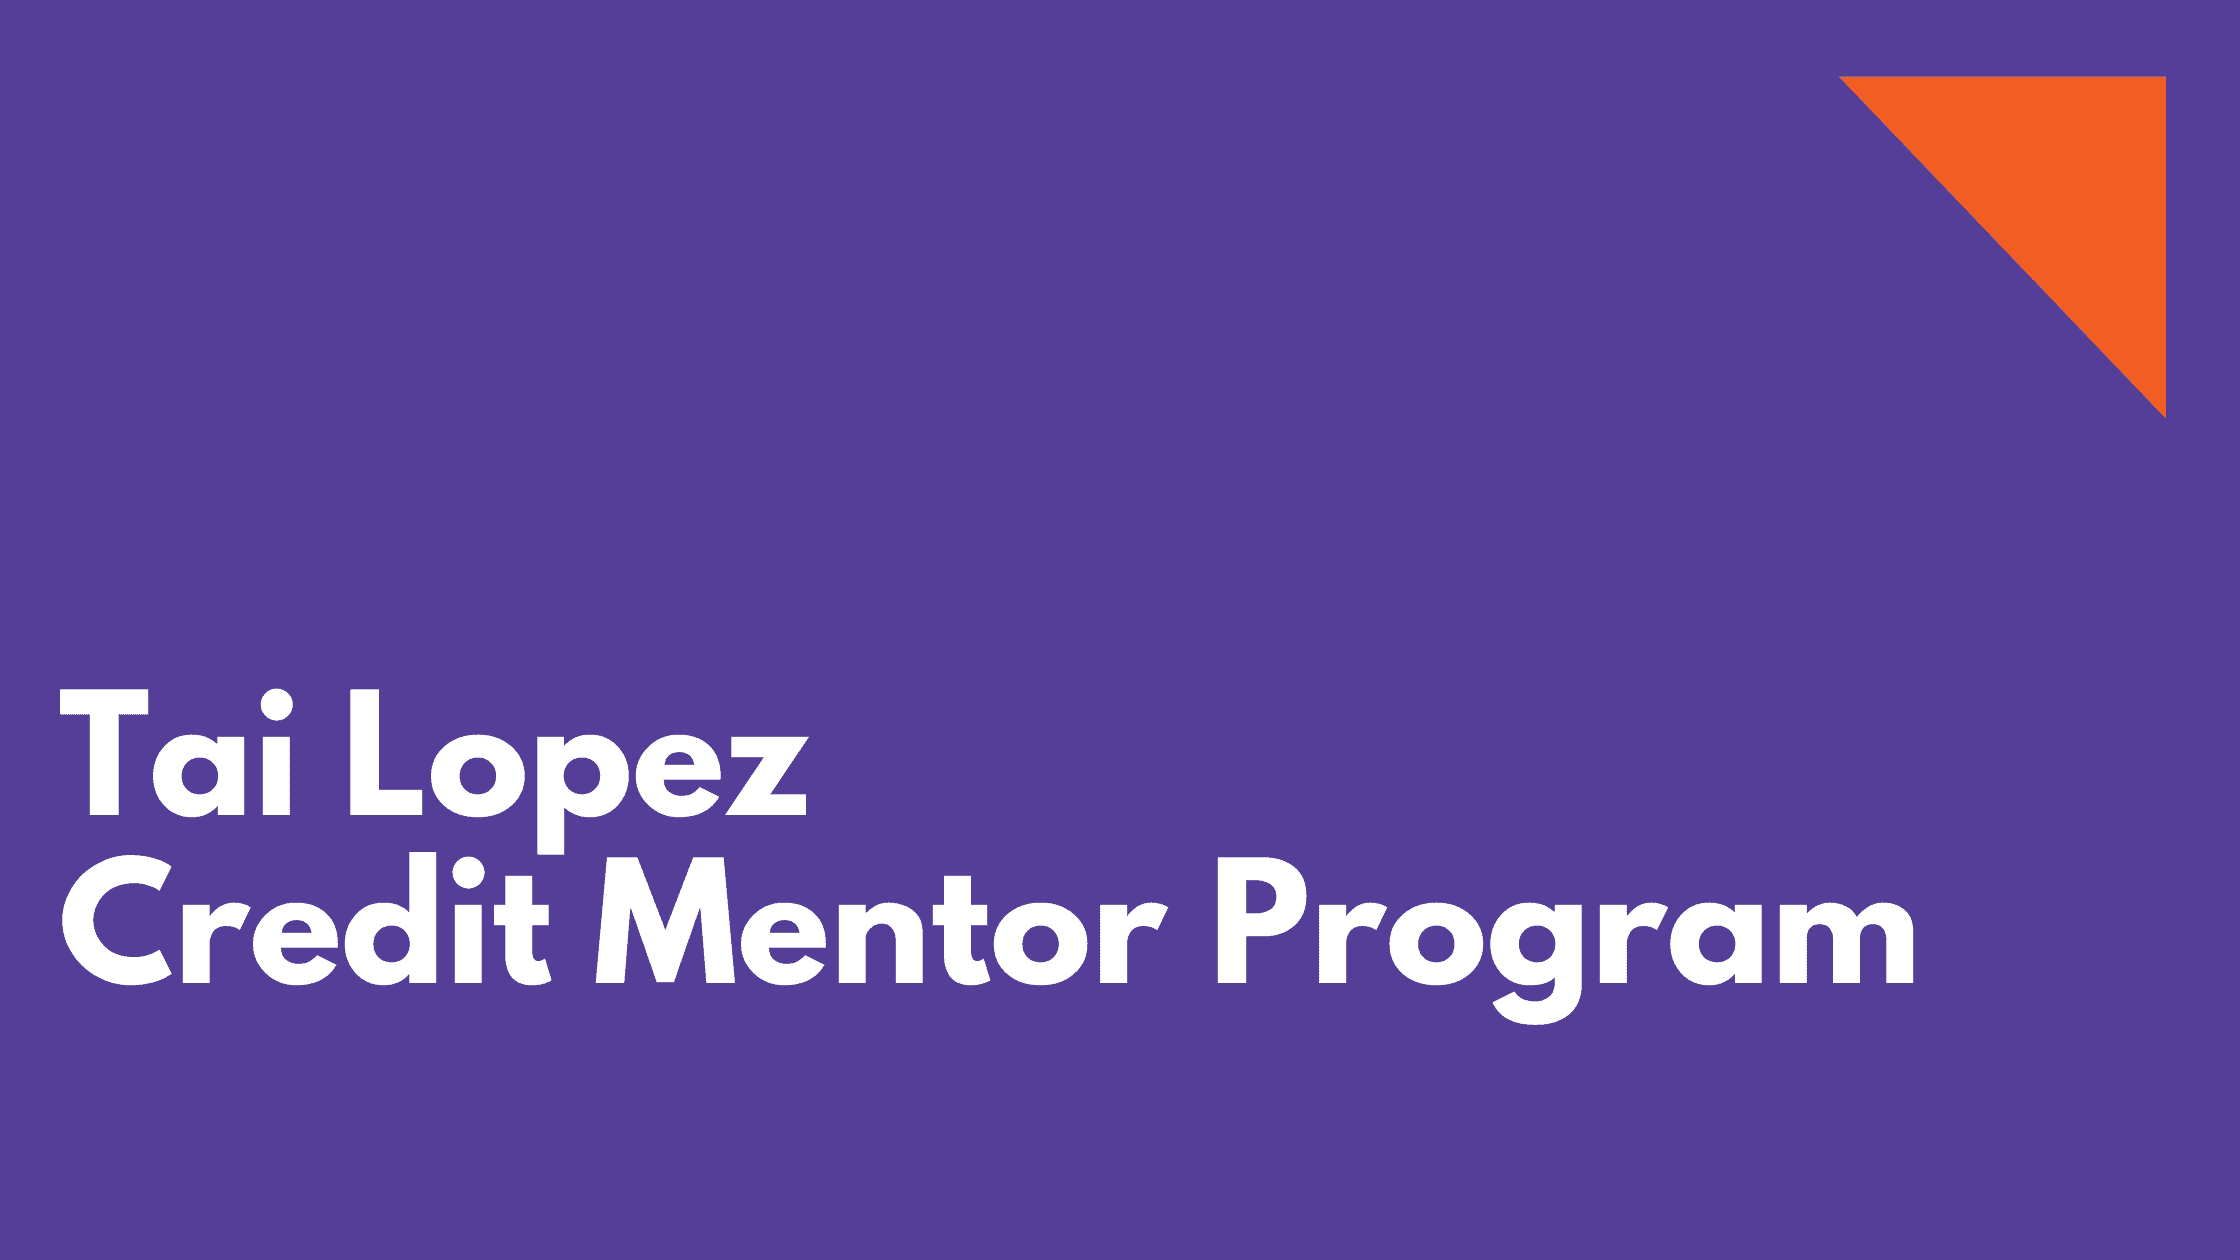 Tai Lopez credit mentor program